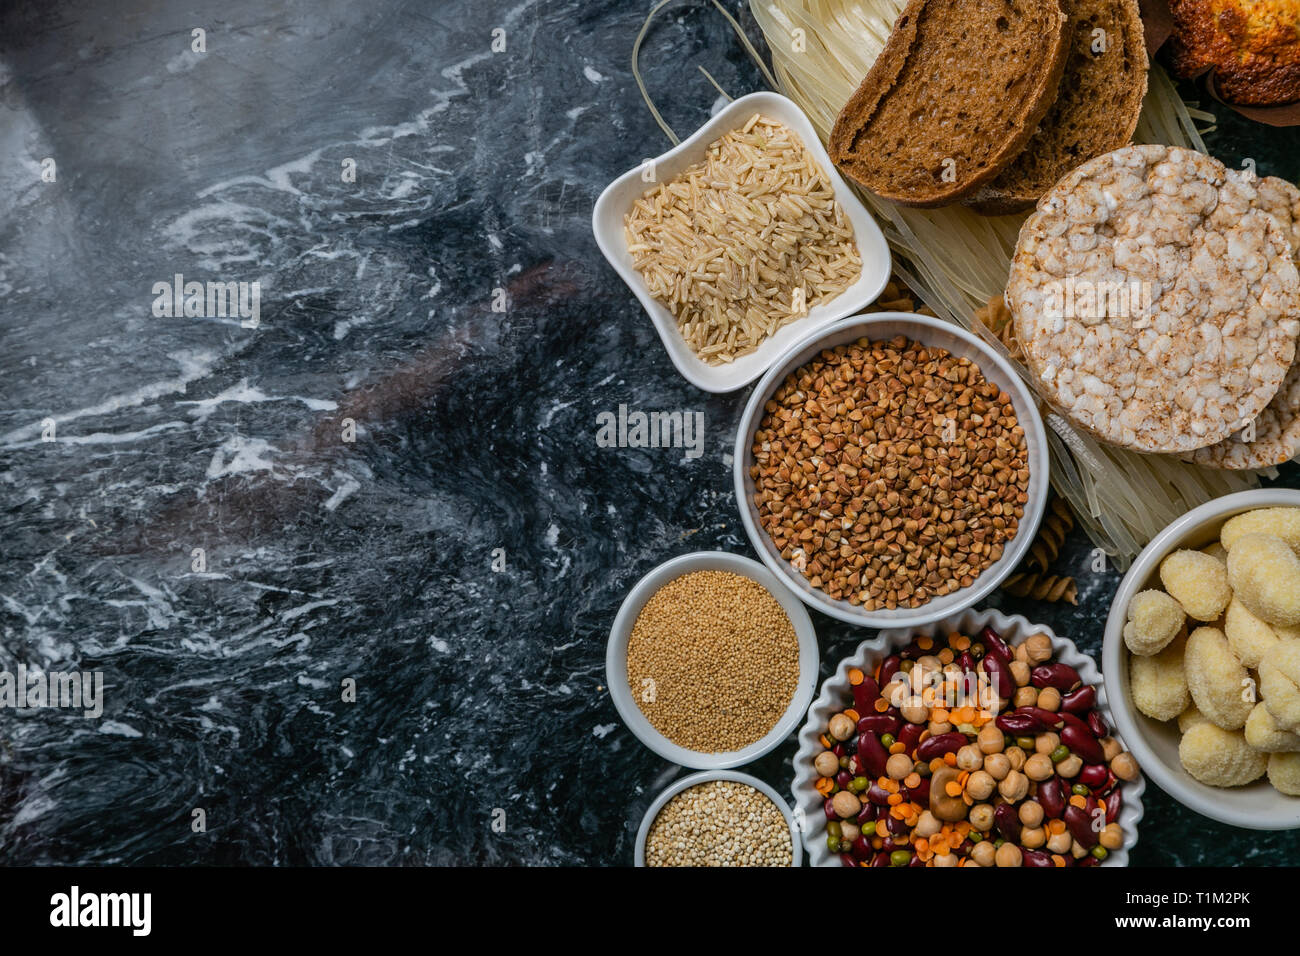 Gluten free diet concept - selection of grains and carbohydrates for people with gluten intolerance - Stock Image